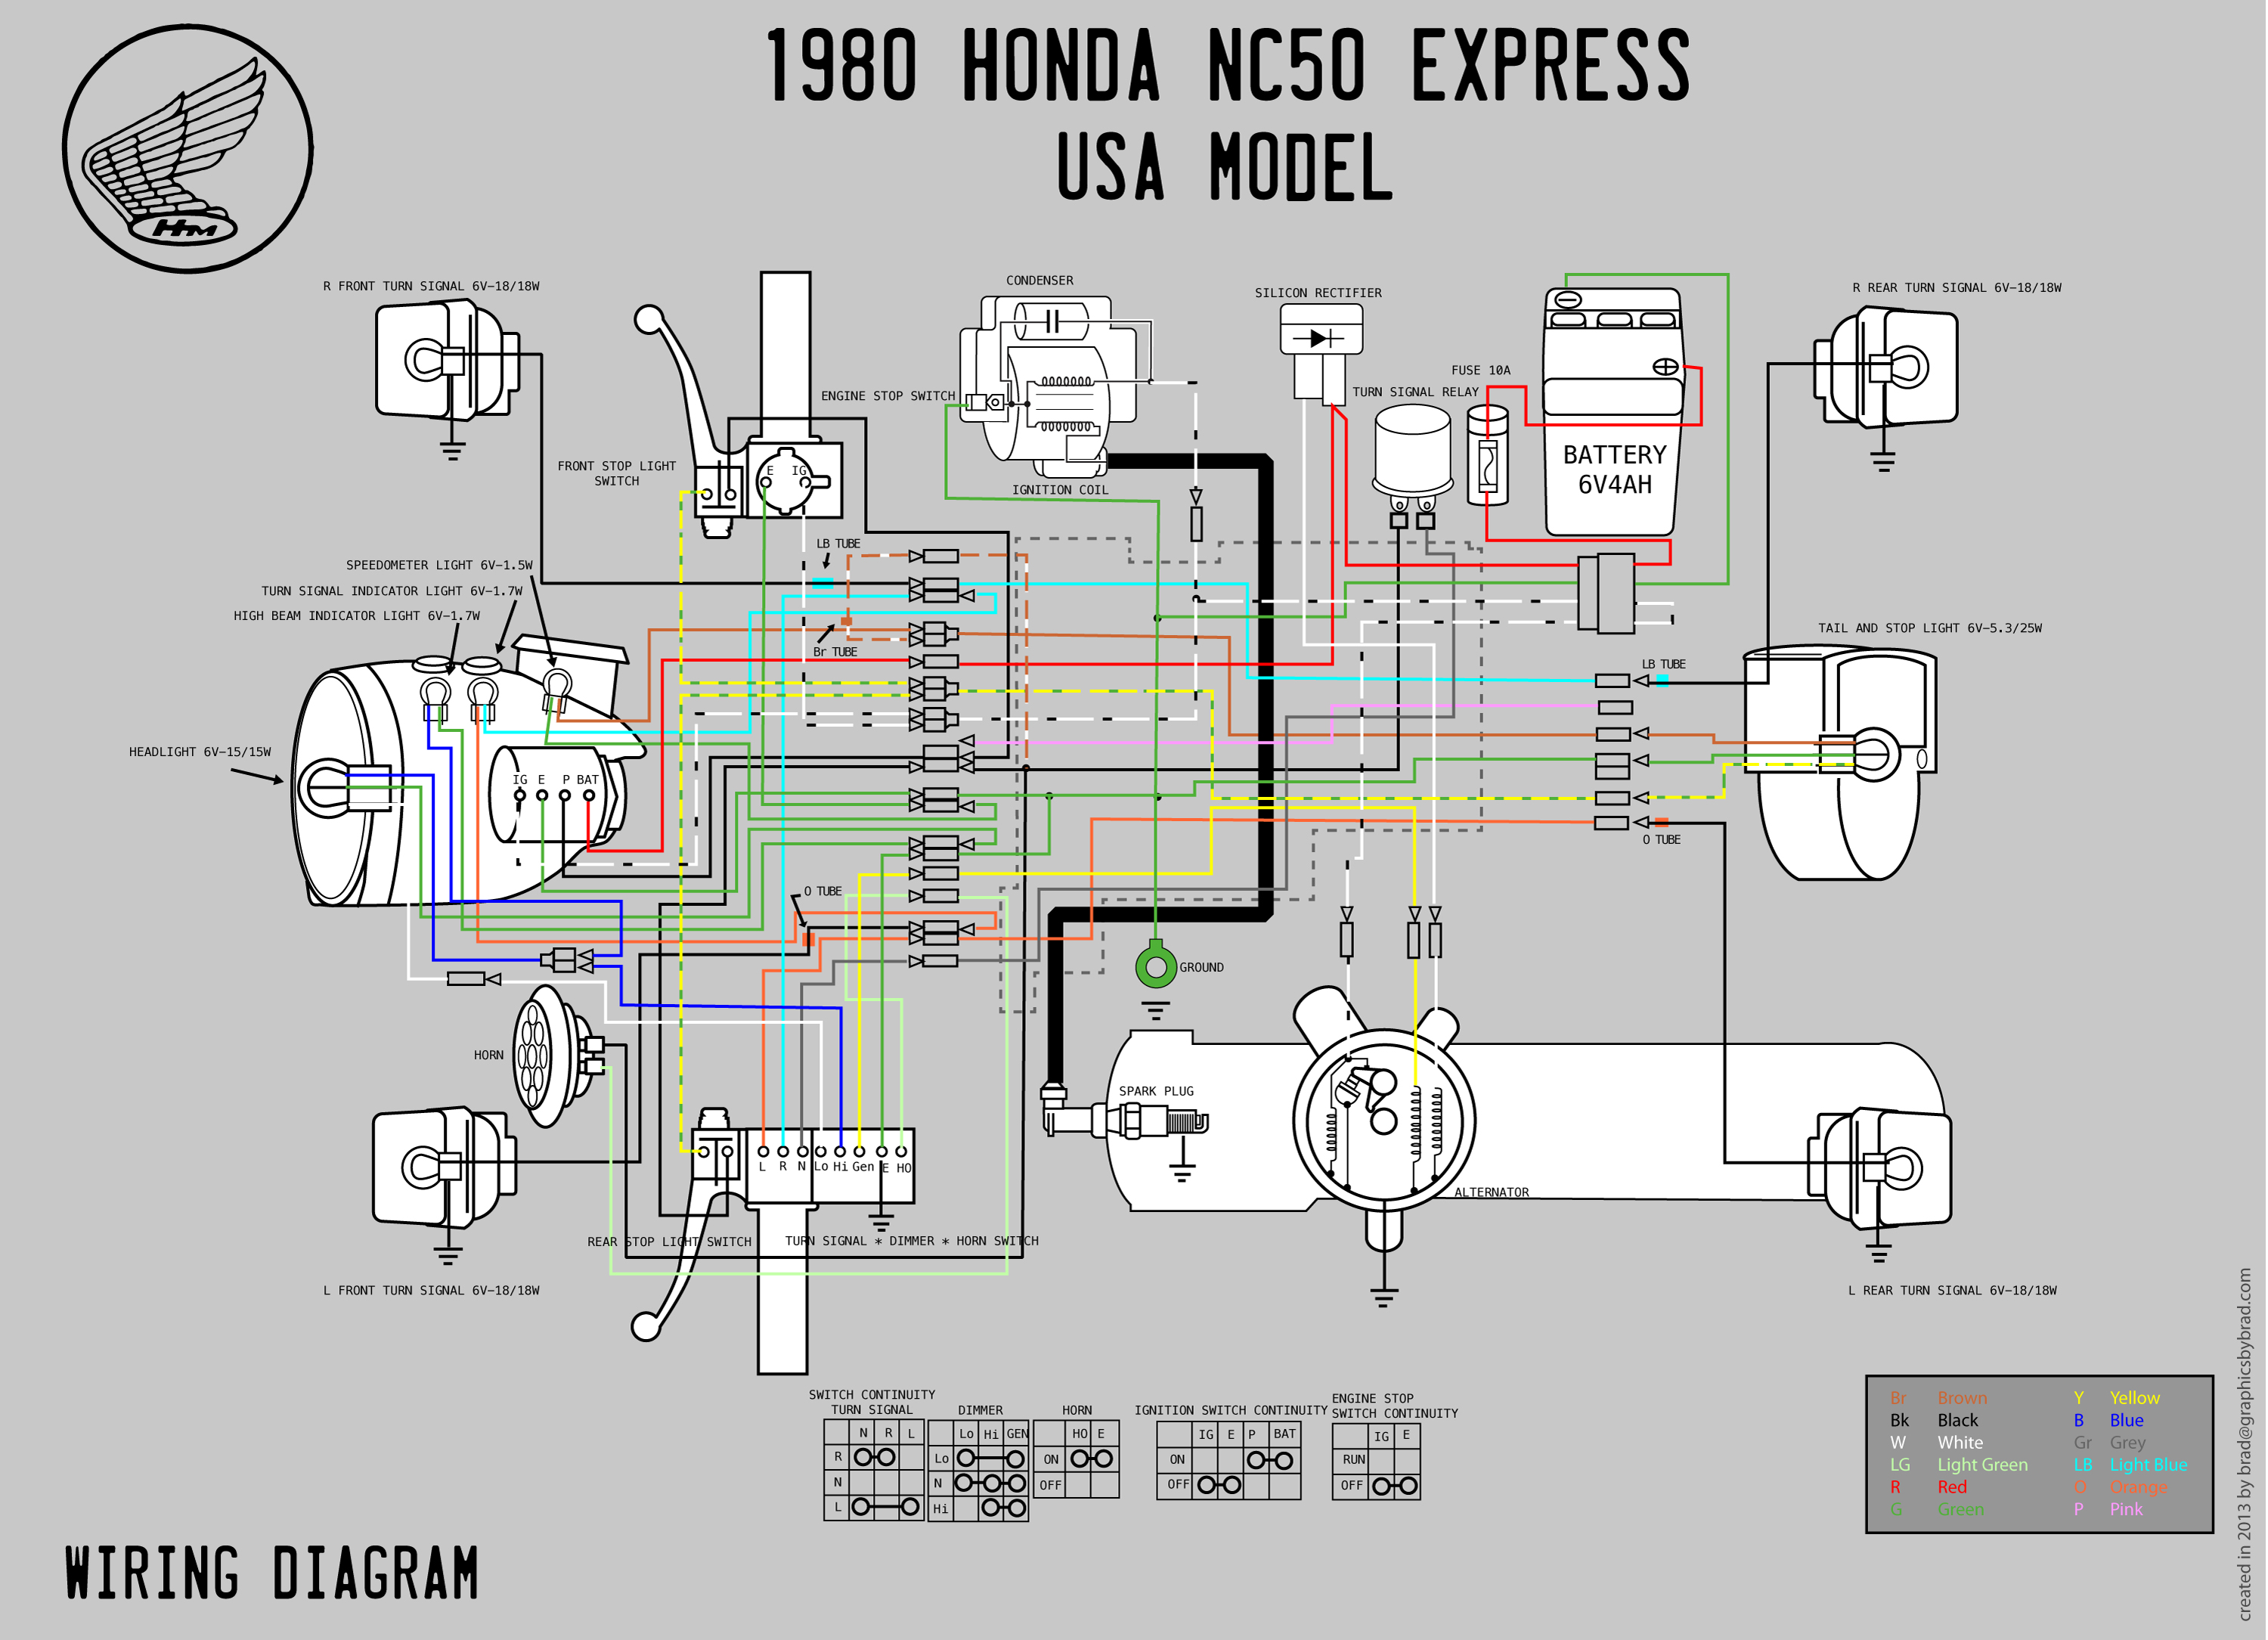 1980 honda nc50 wiring diagram moped wiki. Black Bedroom Furniture Sets. Home Design Ideas